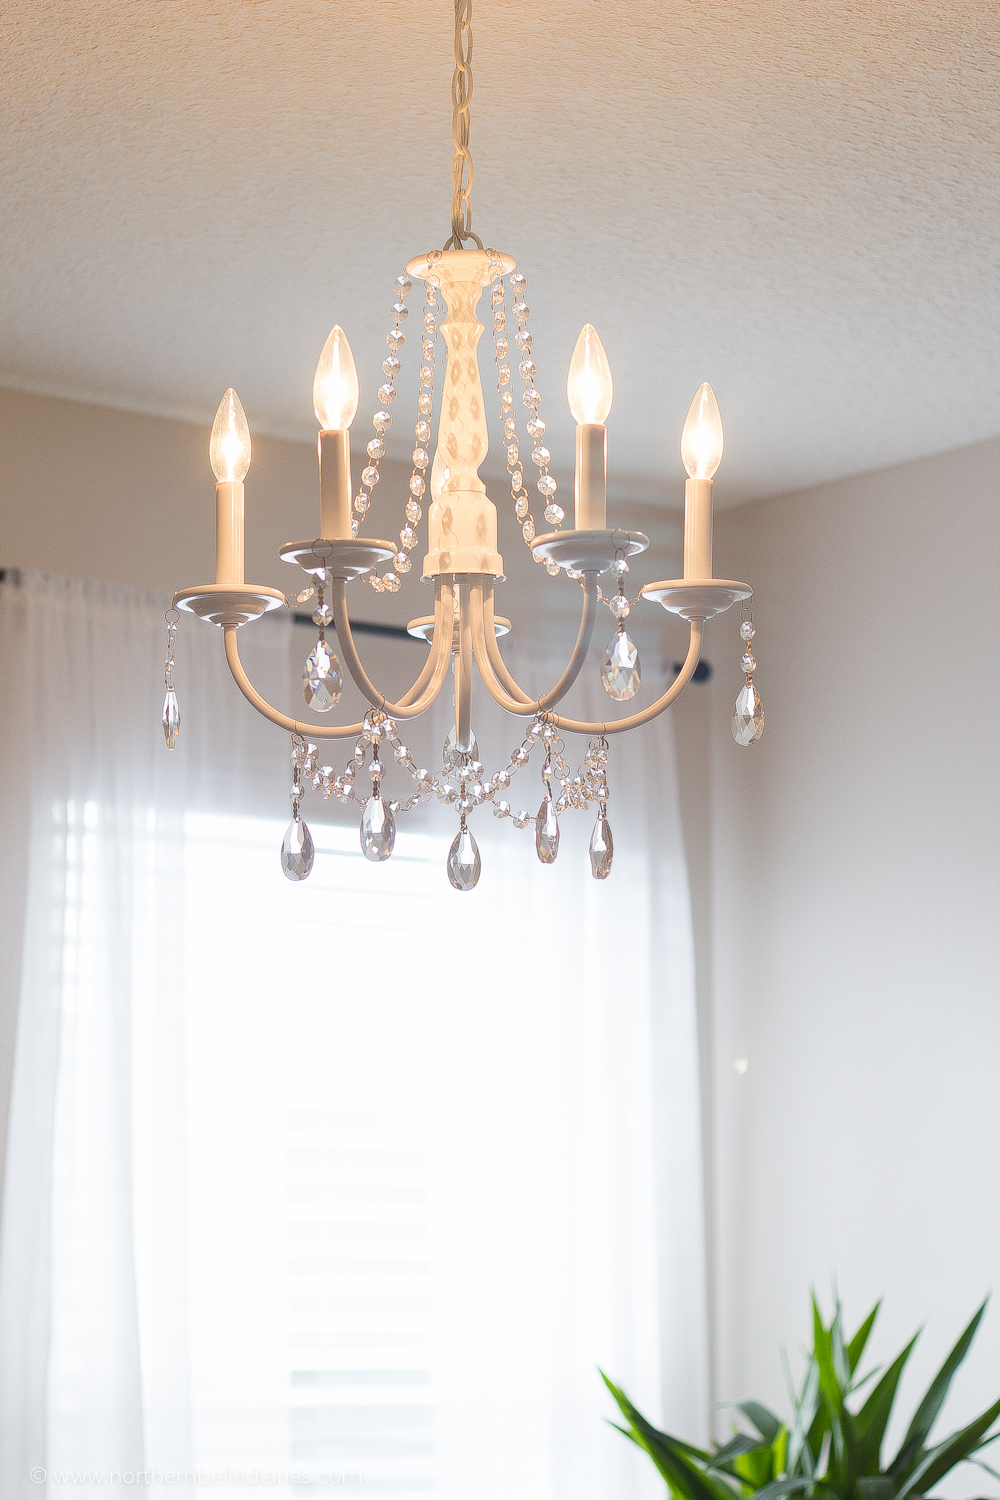 How to make a cheap chandelier my web value you can make your own diy crystal chandelier this site shows you how aloadofball Images